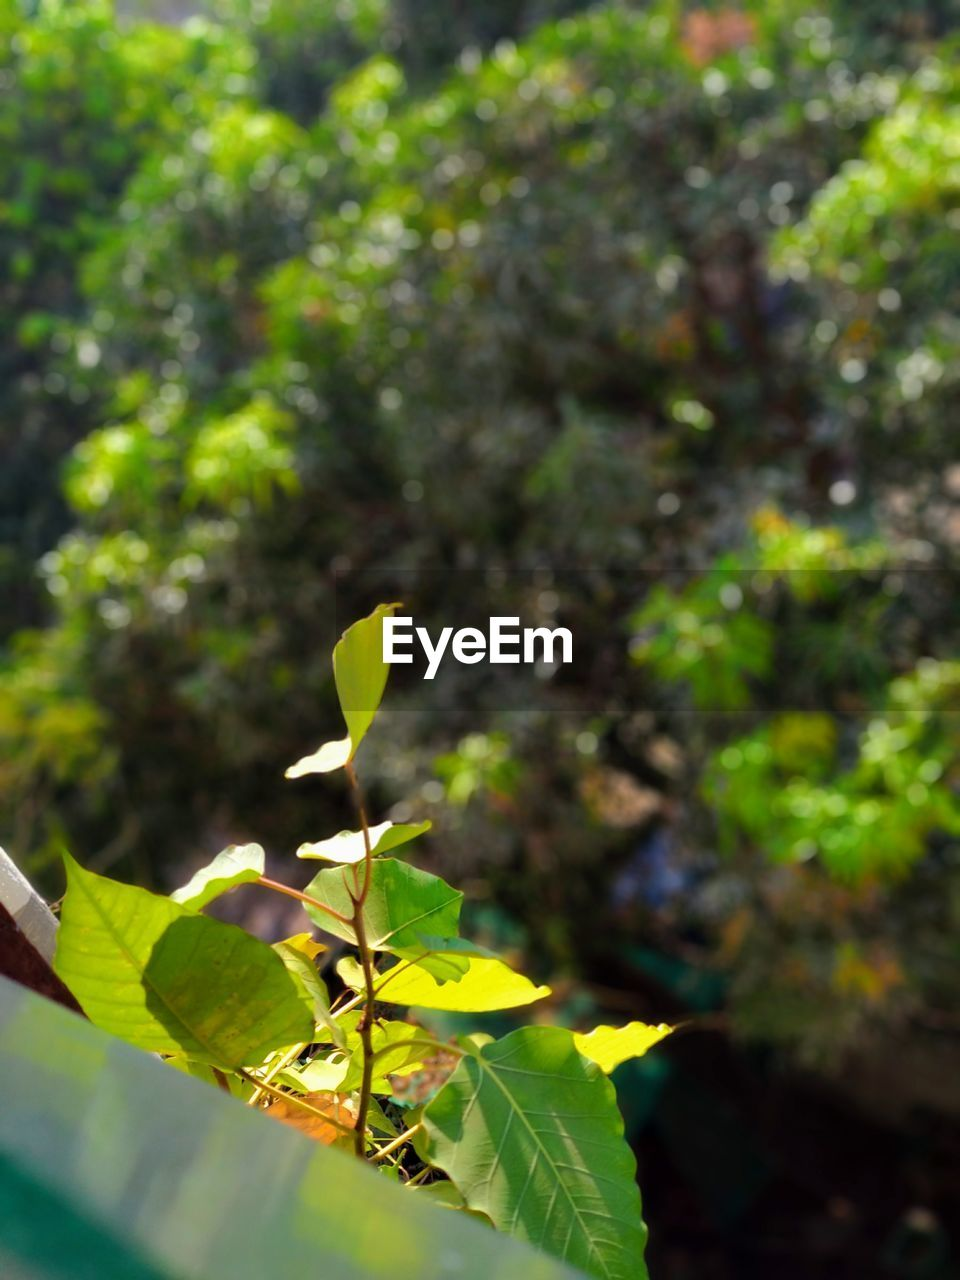 growth, plant, leaf, nature, green color, no people, day, outdoors, fragility, close-up, freshness, beauty in nature